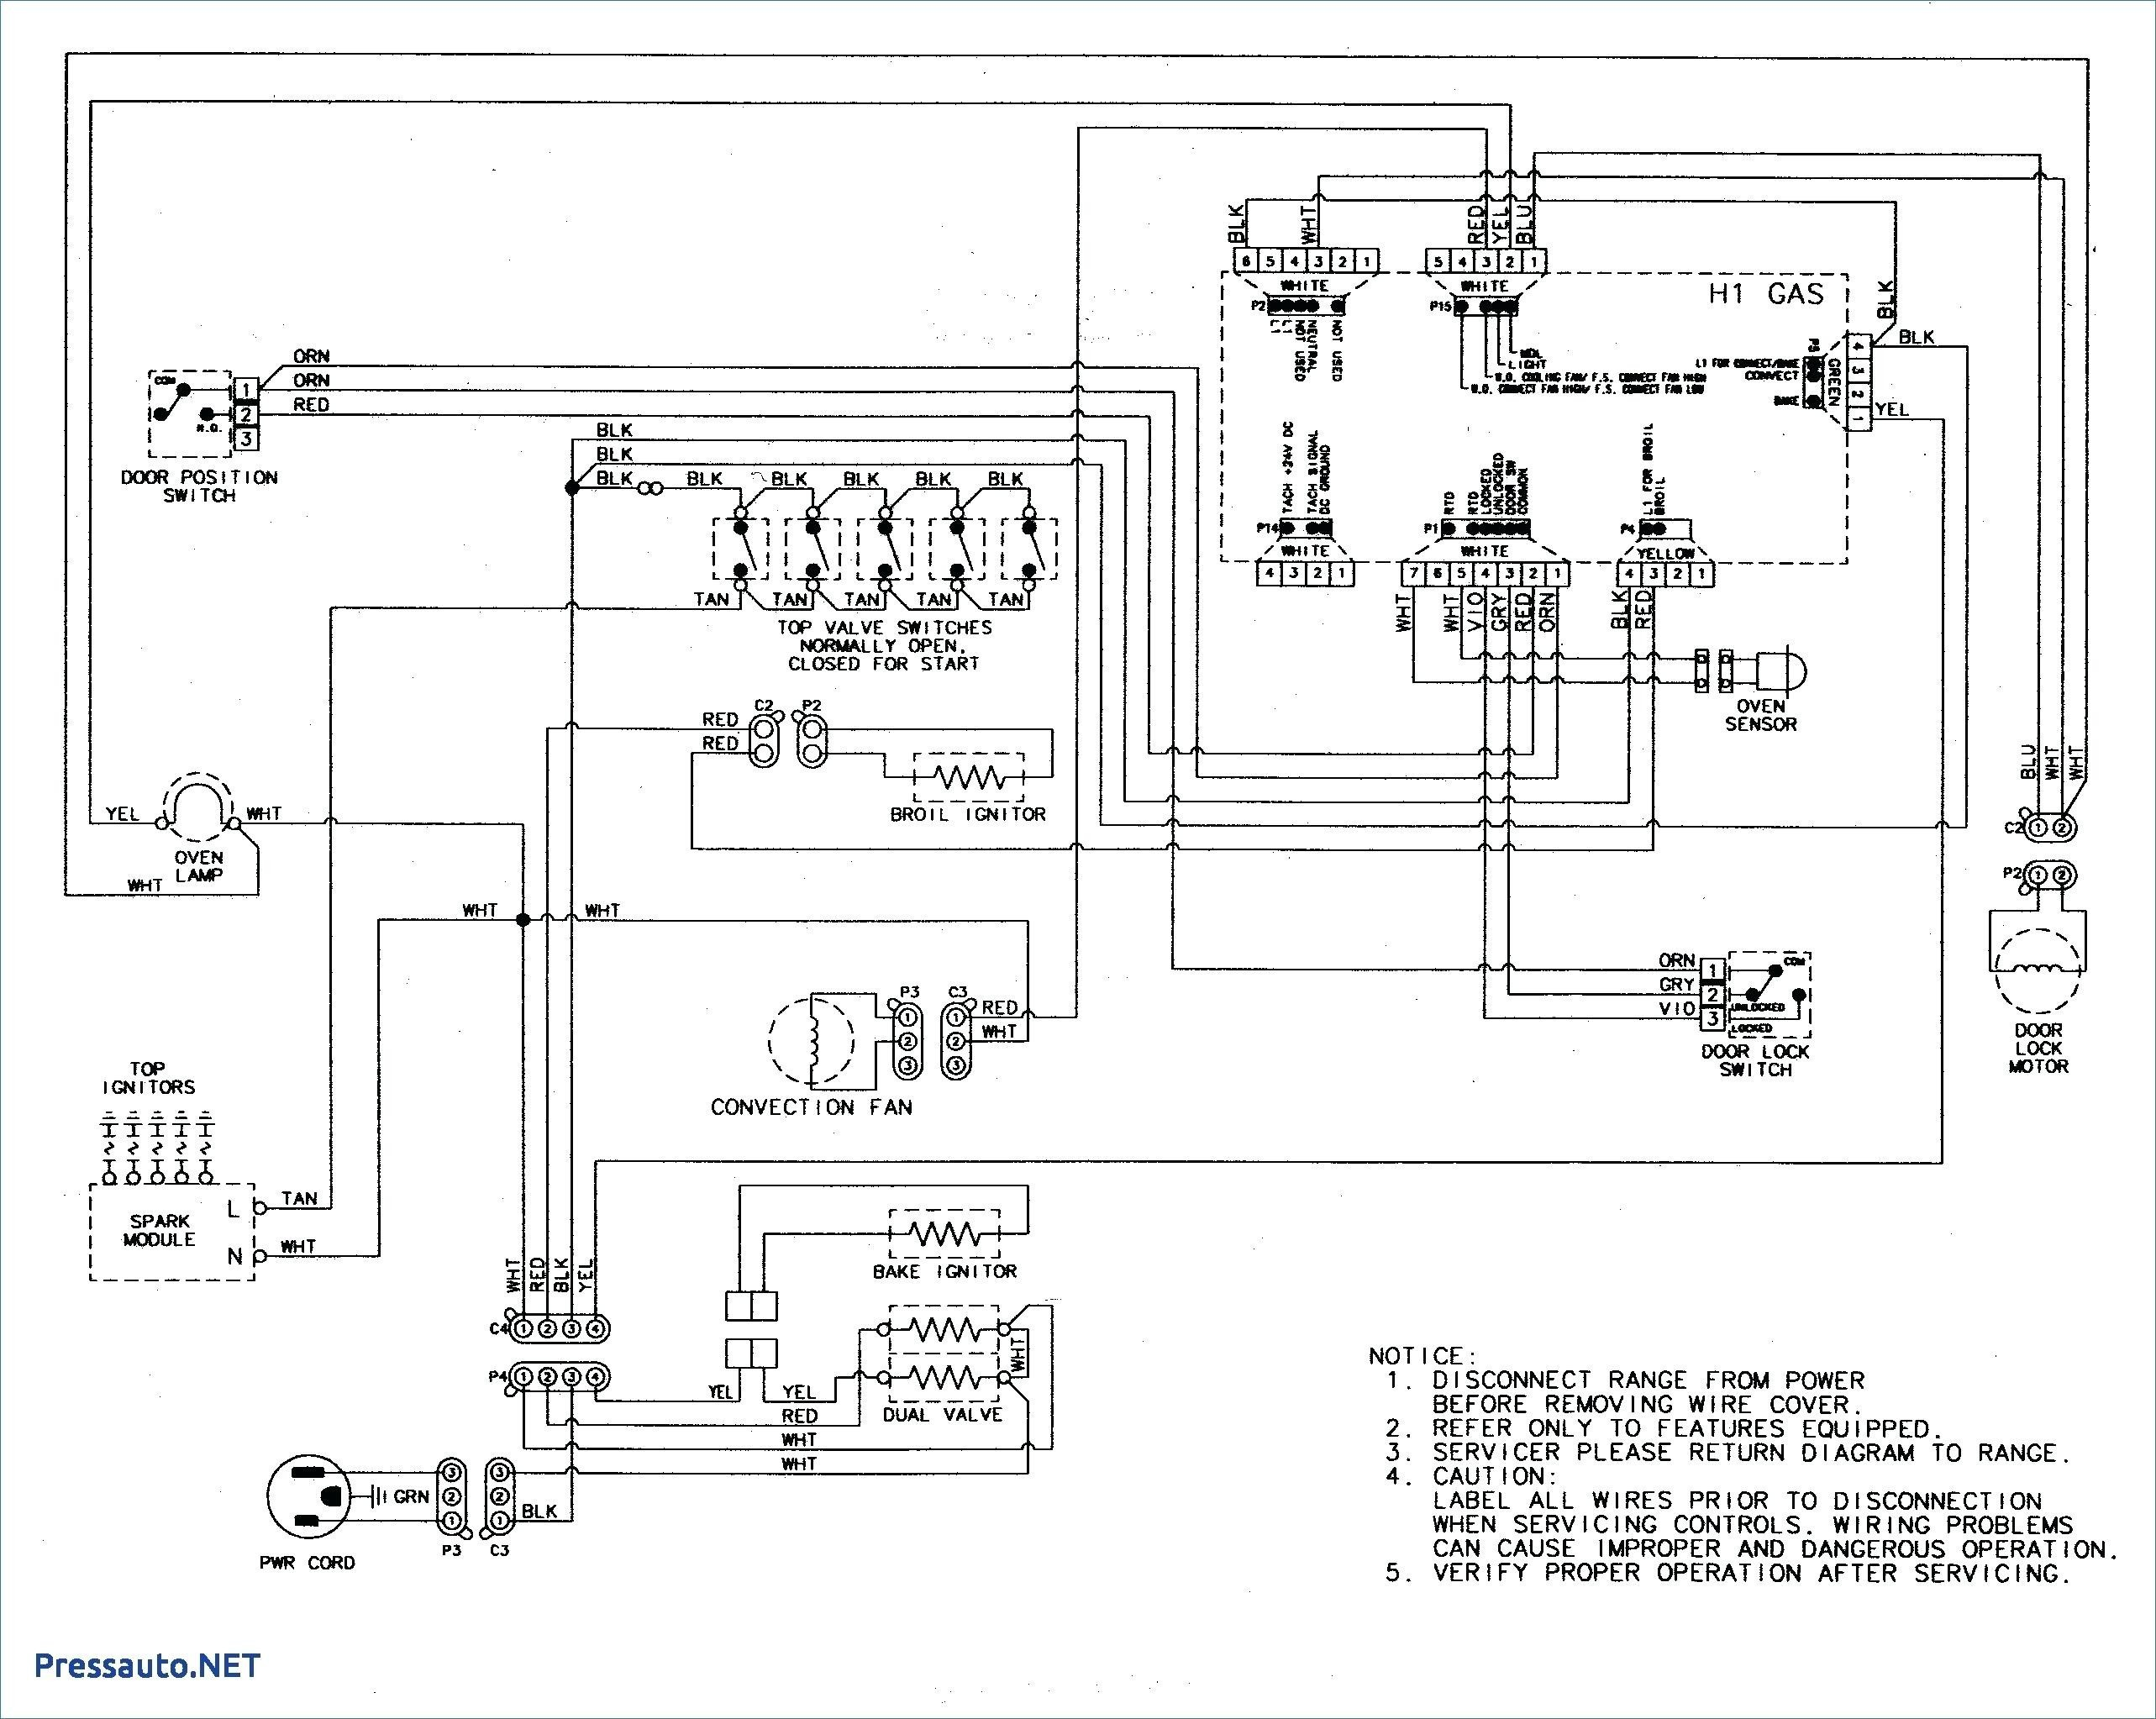 car ac schematic diagram iphone headphones mic wiring auto aircon working